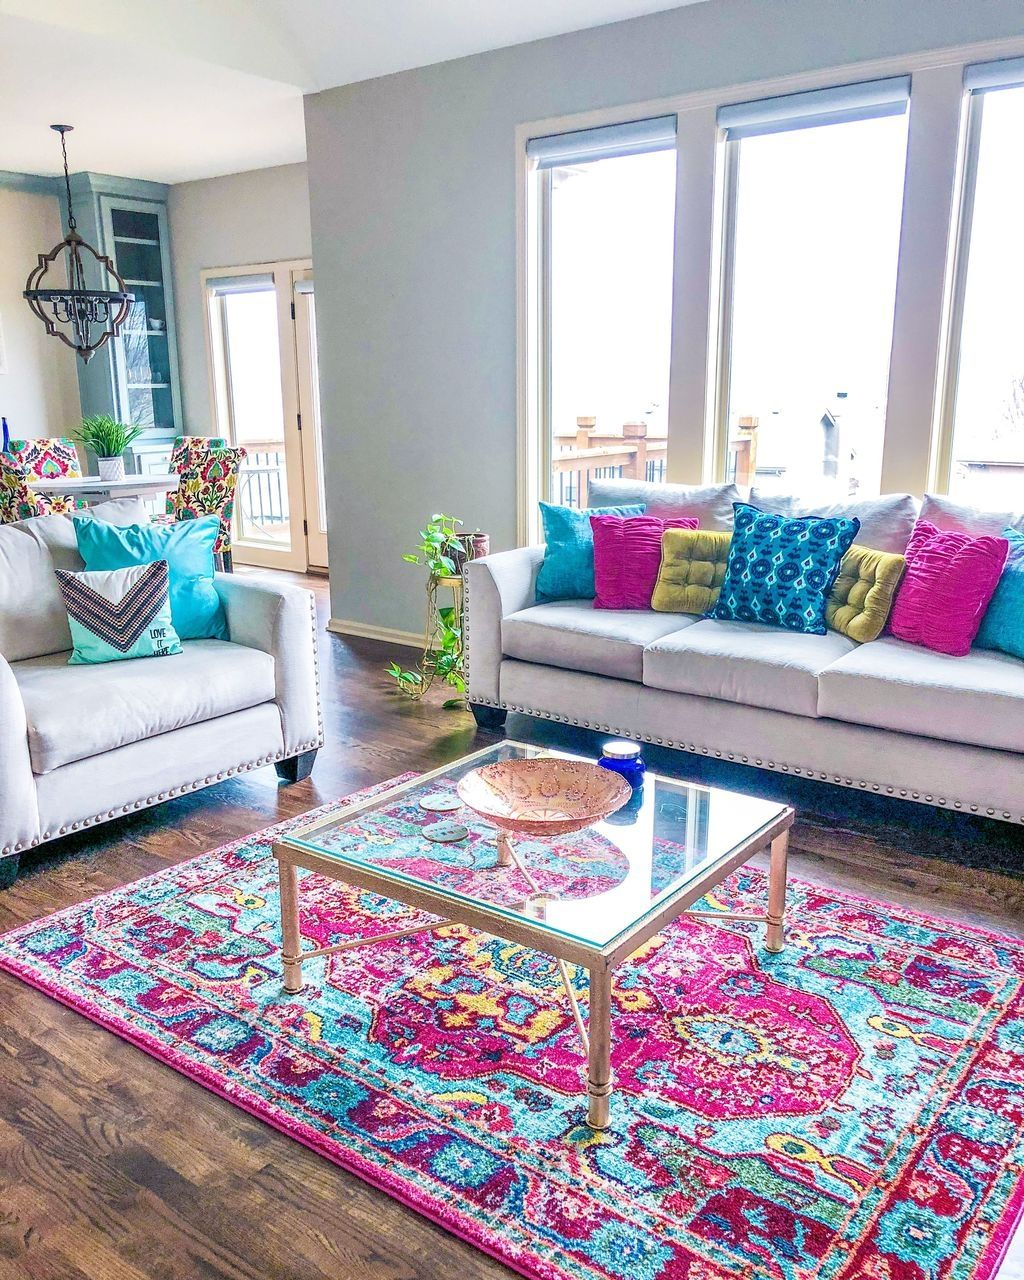 20+ Best Ideas To Bring A Pop Of Bright Color Into Your Interior Design - LOVAHOMY